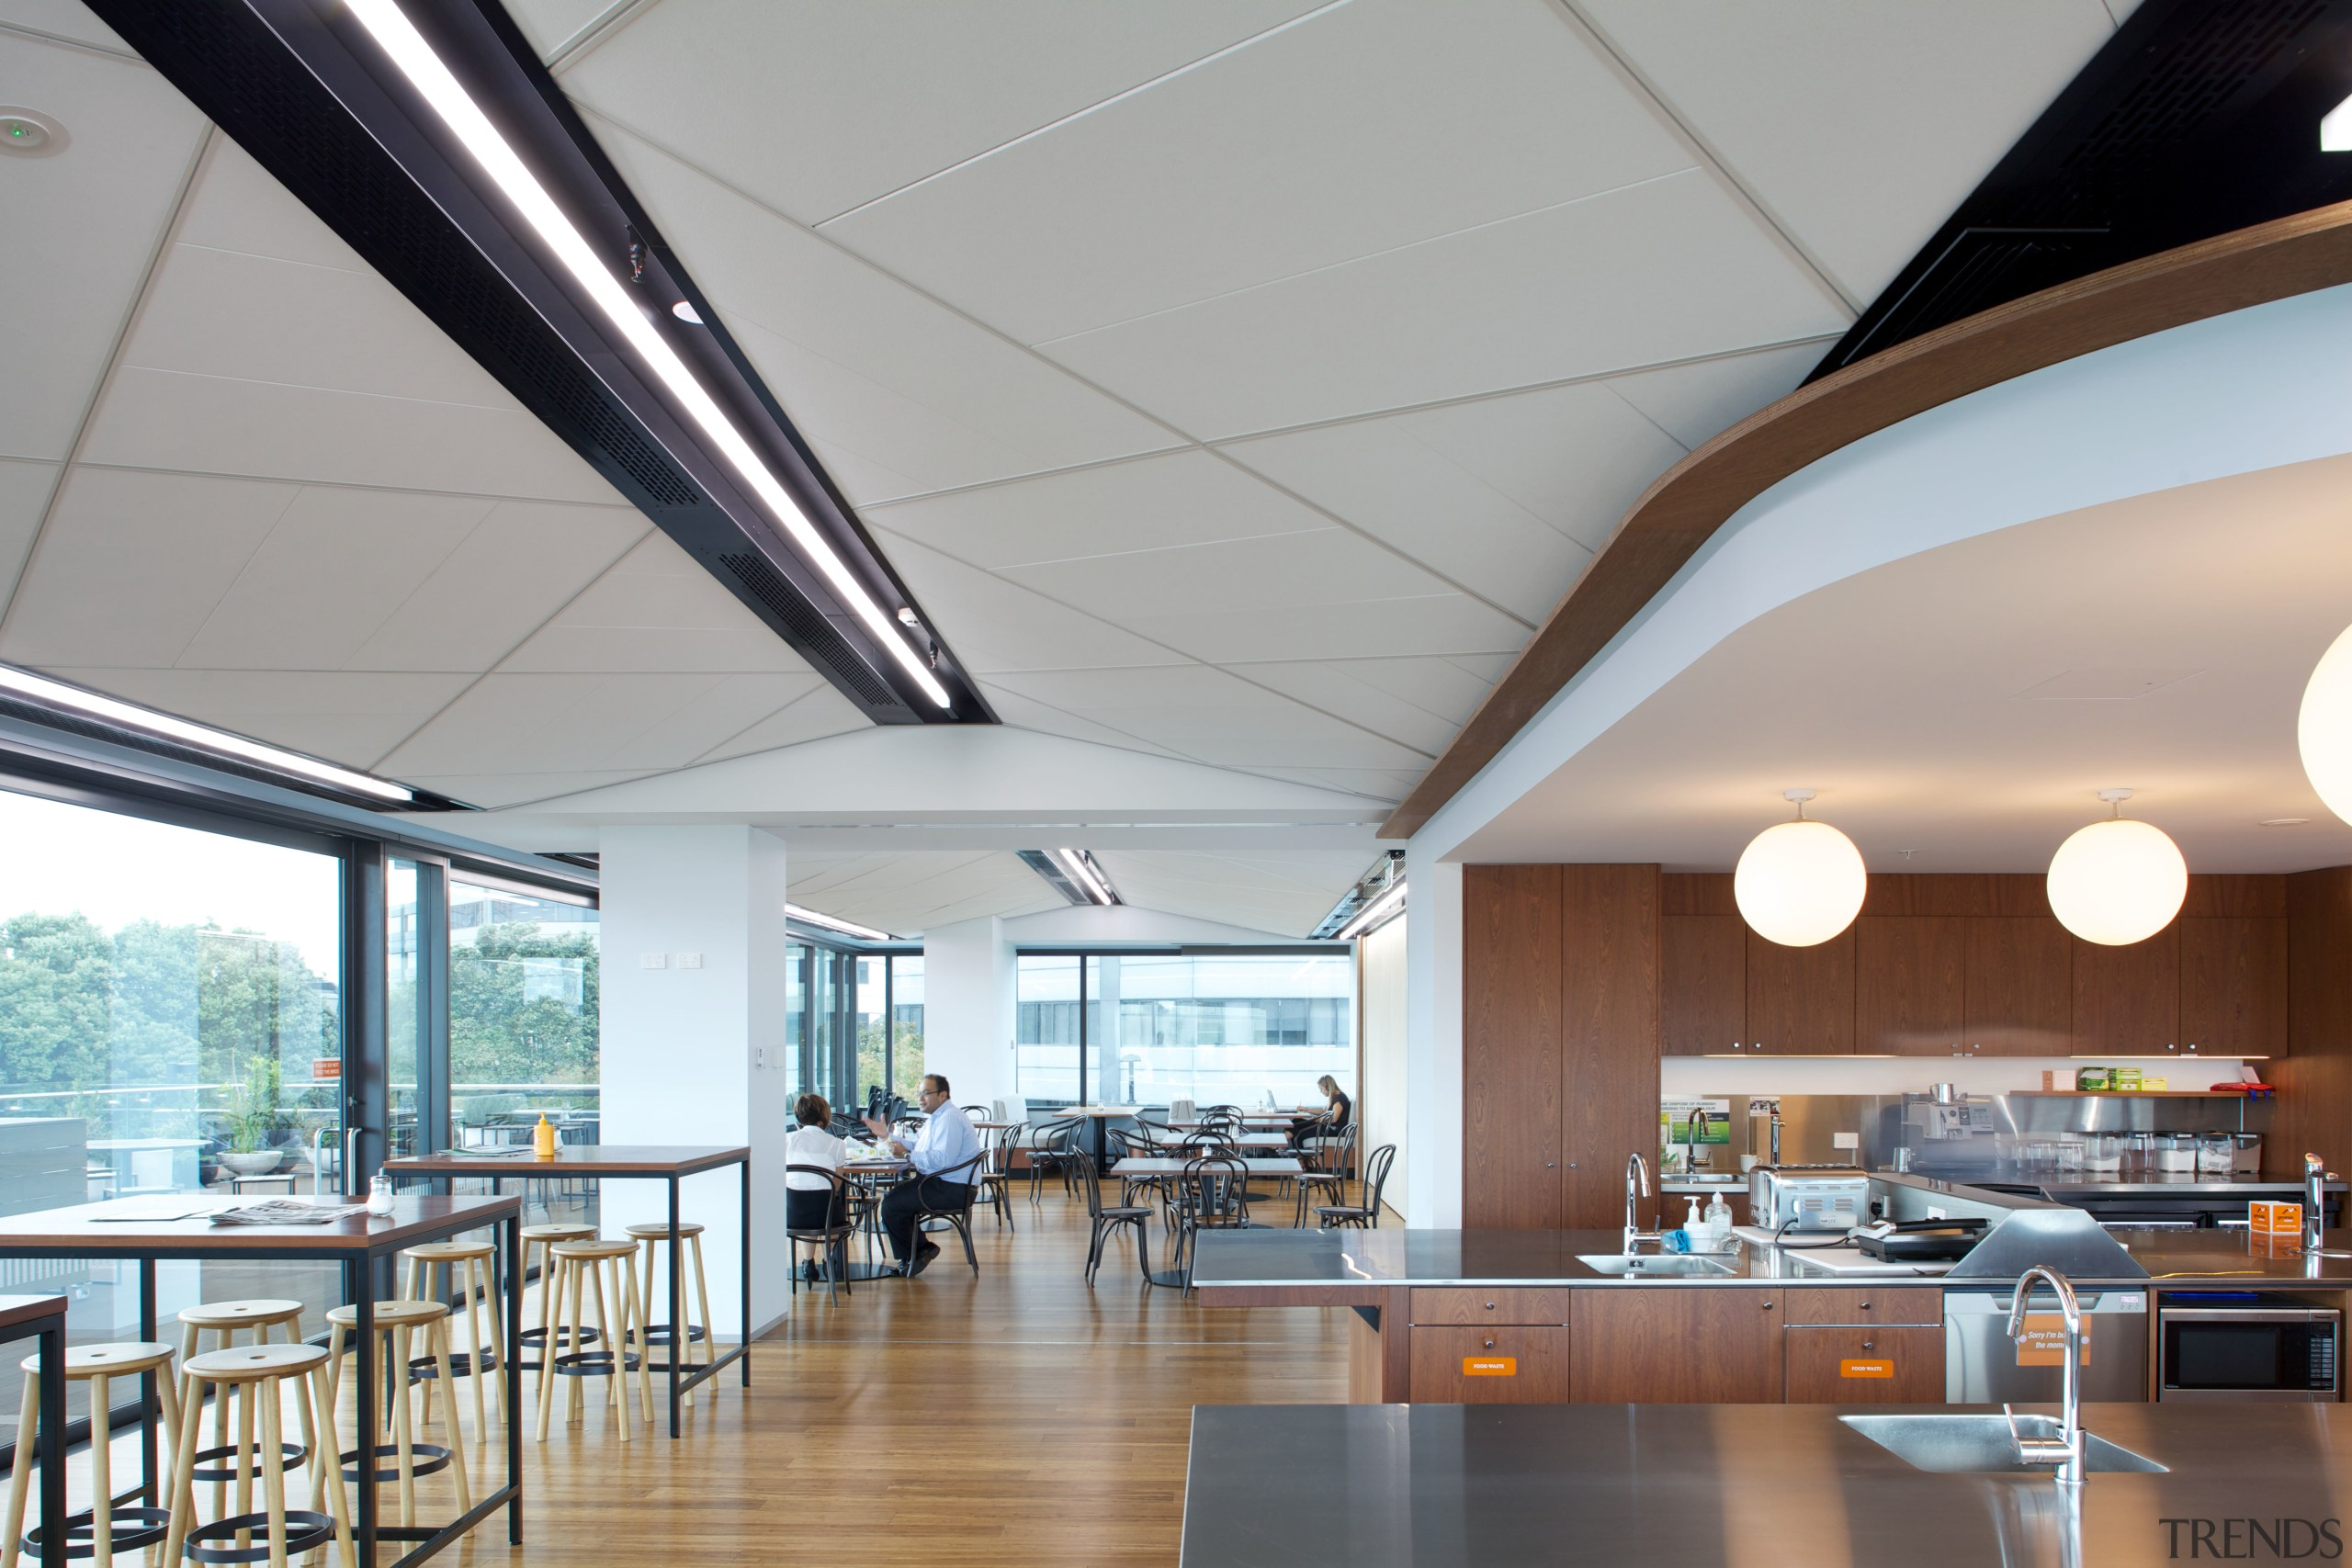 Above and beyond  the new Genesis Energy ceiling, daylighting, interior design, lighting, real estate, roof, gray